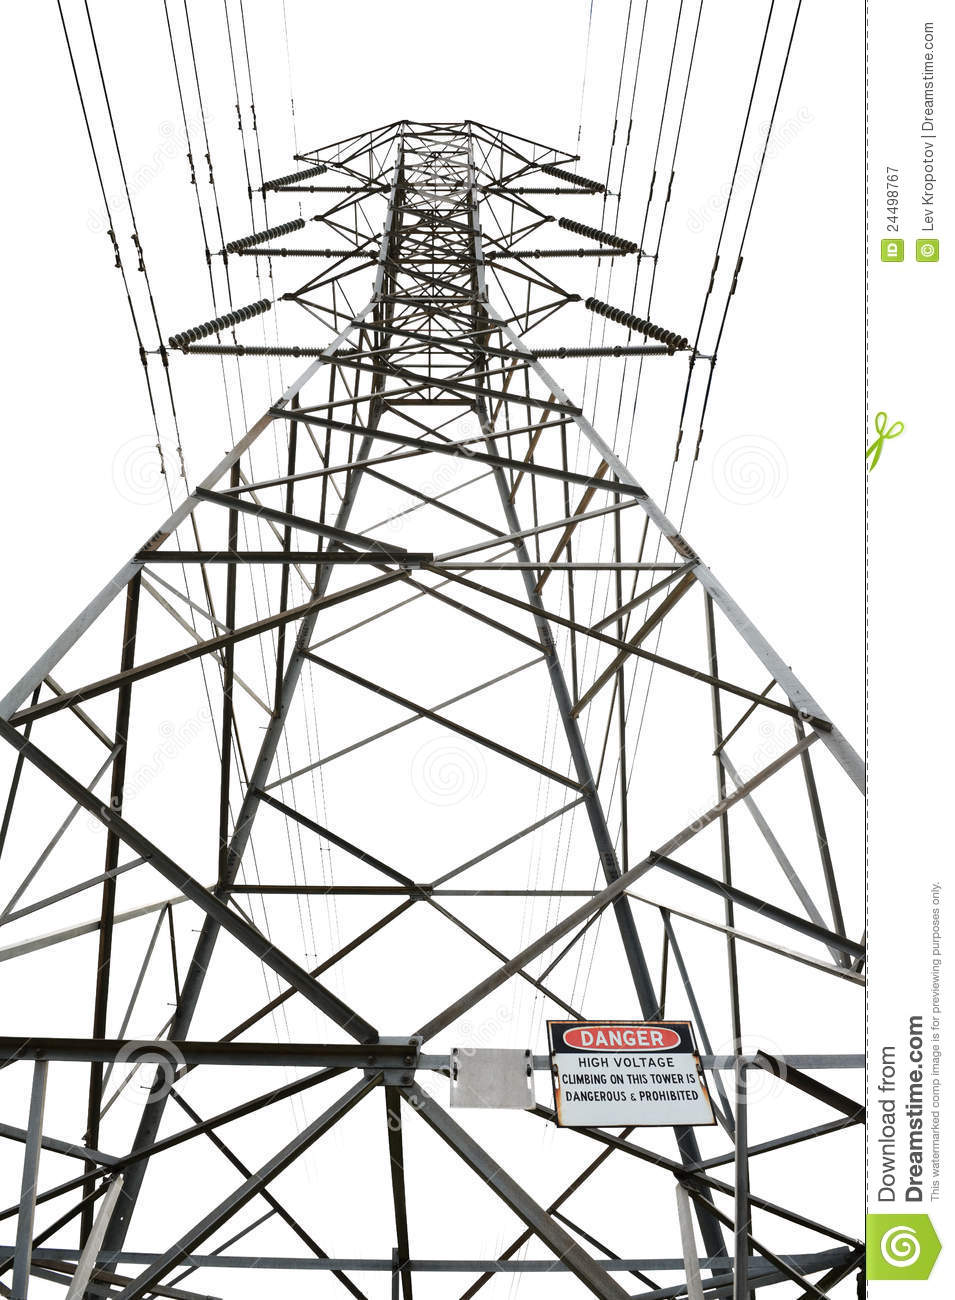 high voltage power pole stock image  image of isolator